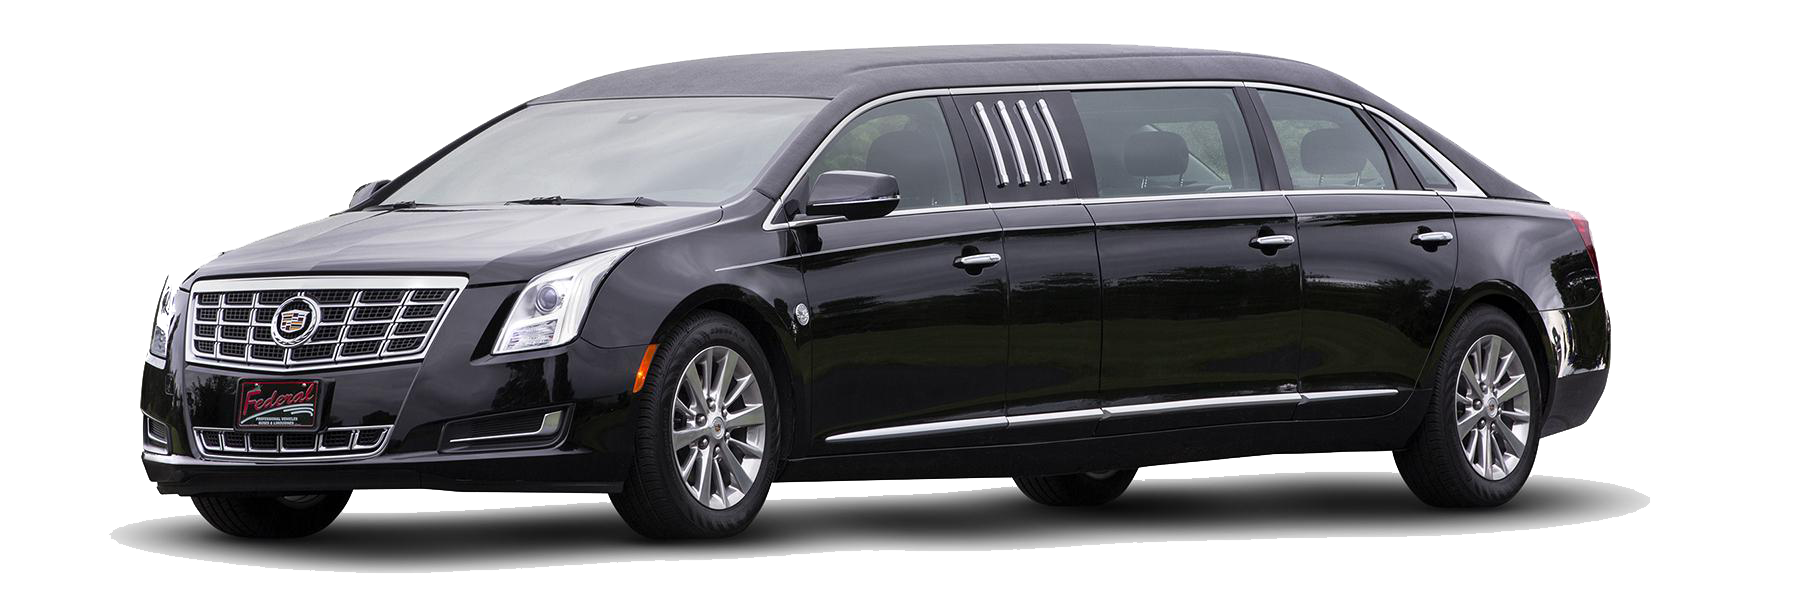 2016 cadillac xts s s new 70 raised roof six door limousine cars that caught my eye pinterest cadillac xts cadillac and cars